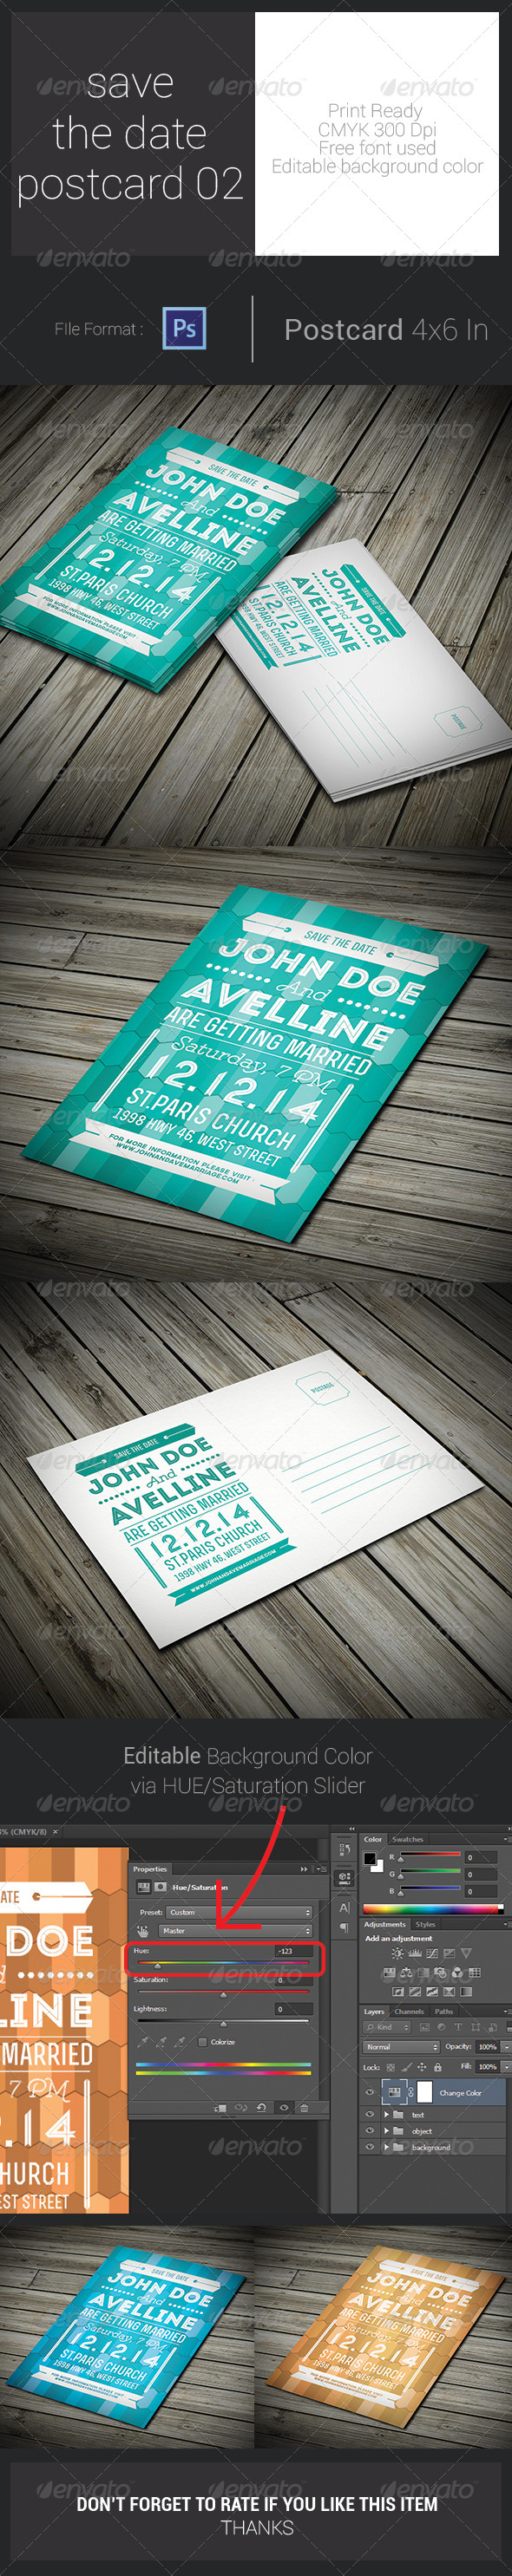 GraphicRiver Save The Date Postcard 02 7739988